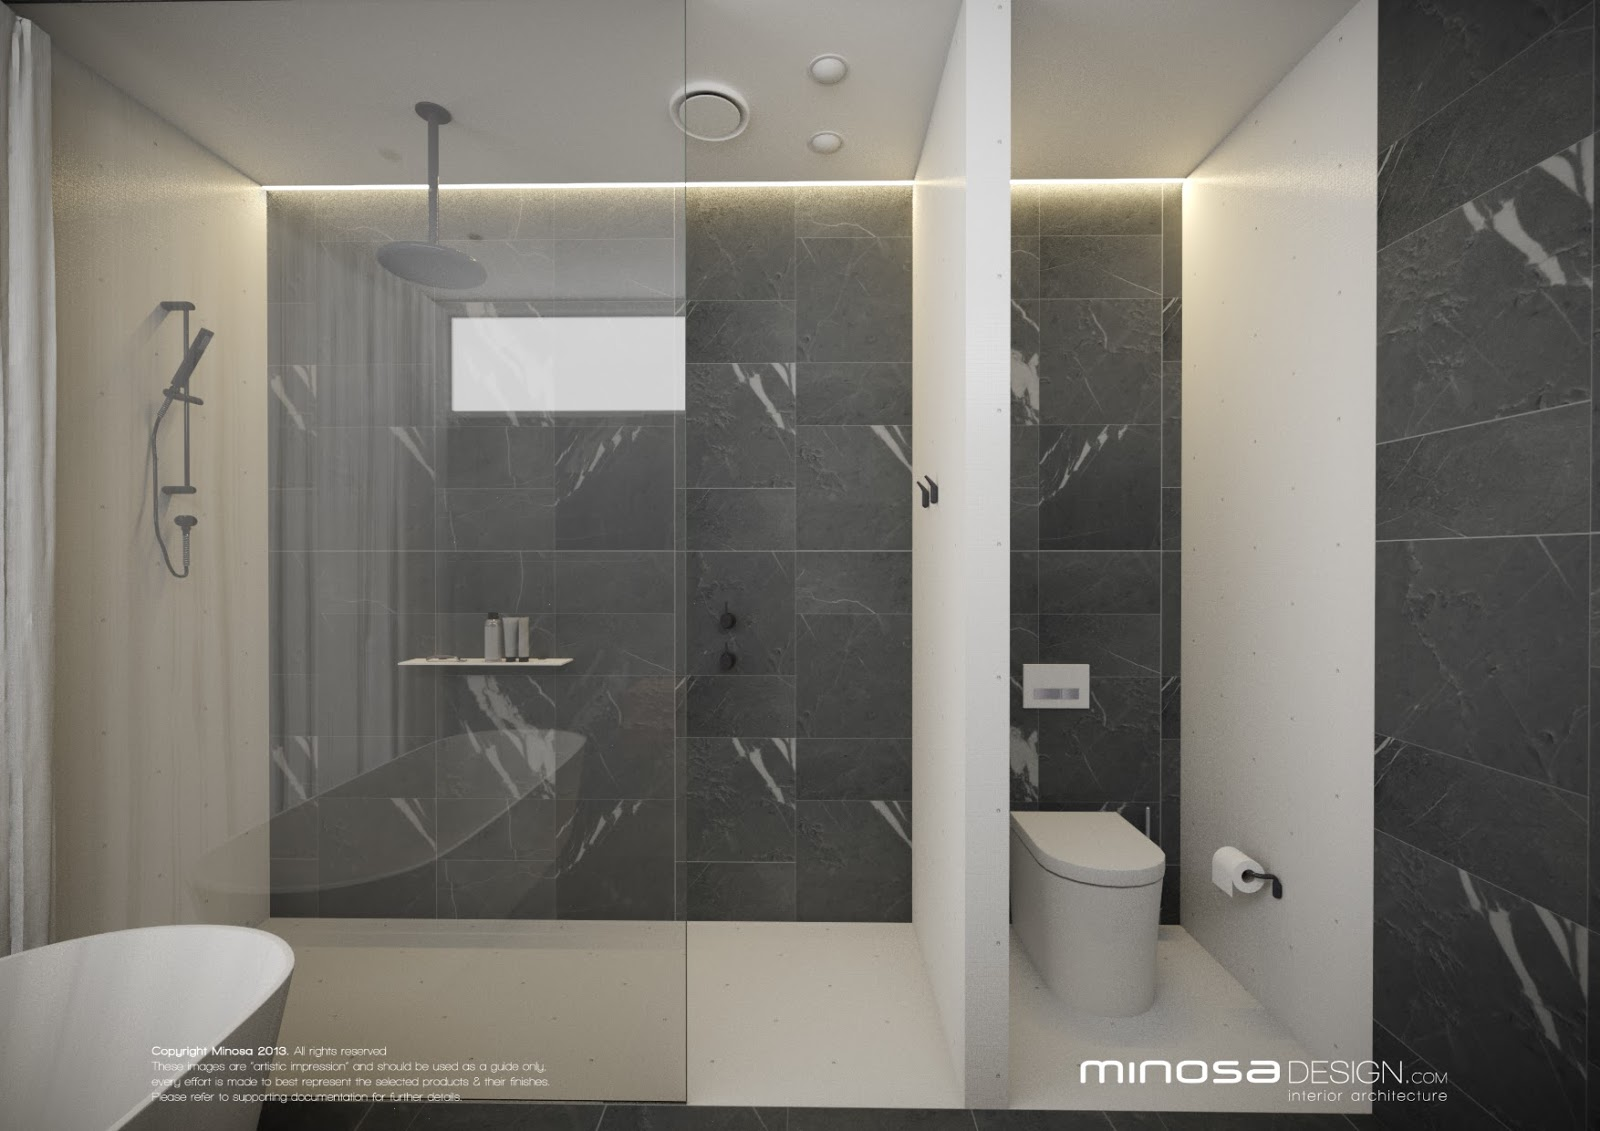 Minosa Design Modern Bathroom Design To Share